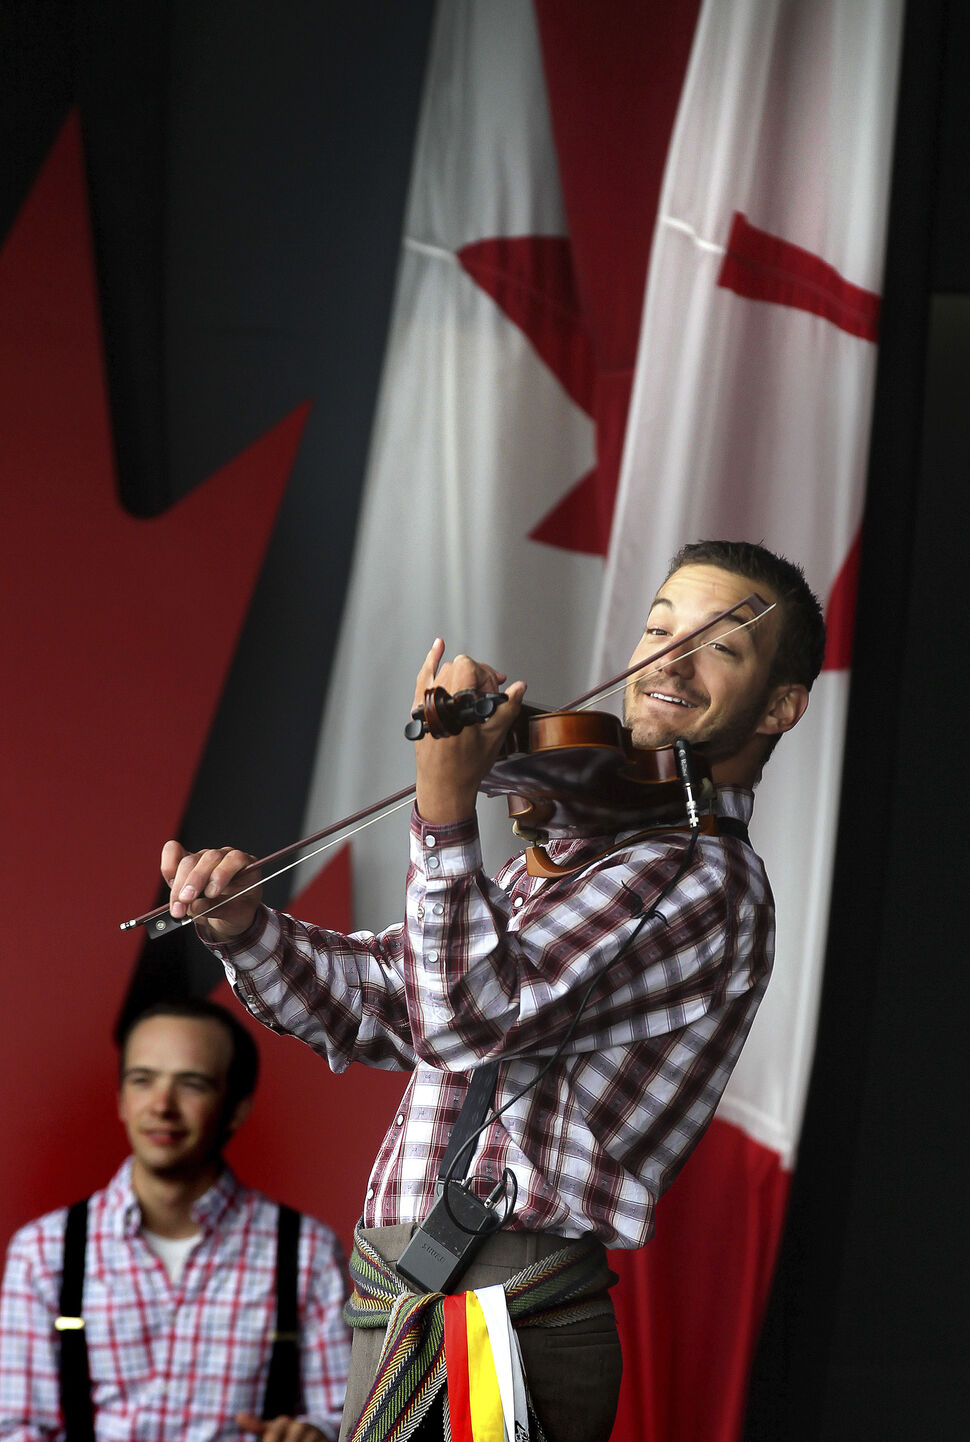 Nic Messner and the Folk Group Ca Claque! warm up the crowd at the Lyric stage at Assiniboine Park for a cool Canada Day celebration. July 1, 2014  (Phil Hossack / Winnipeg Free Press)